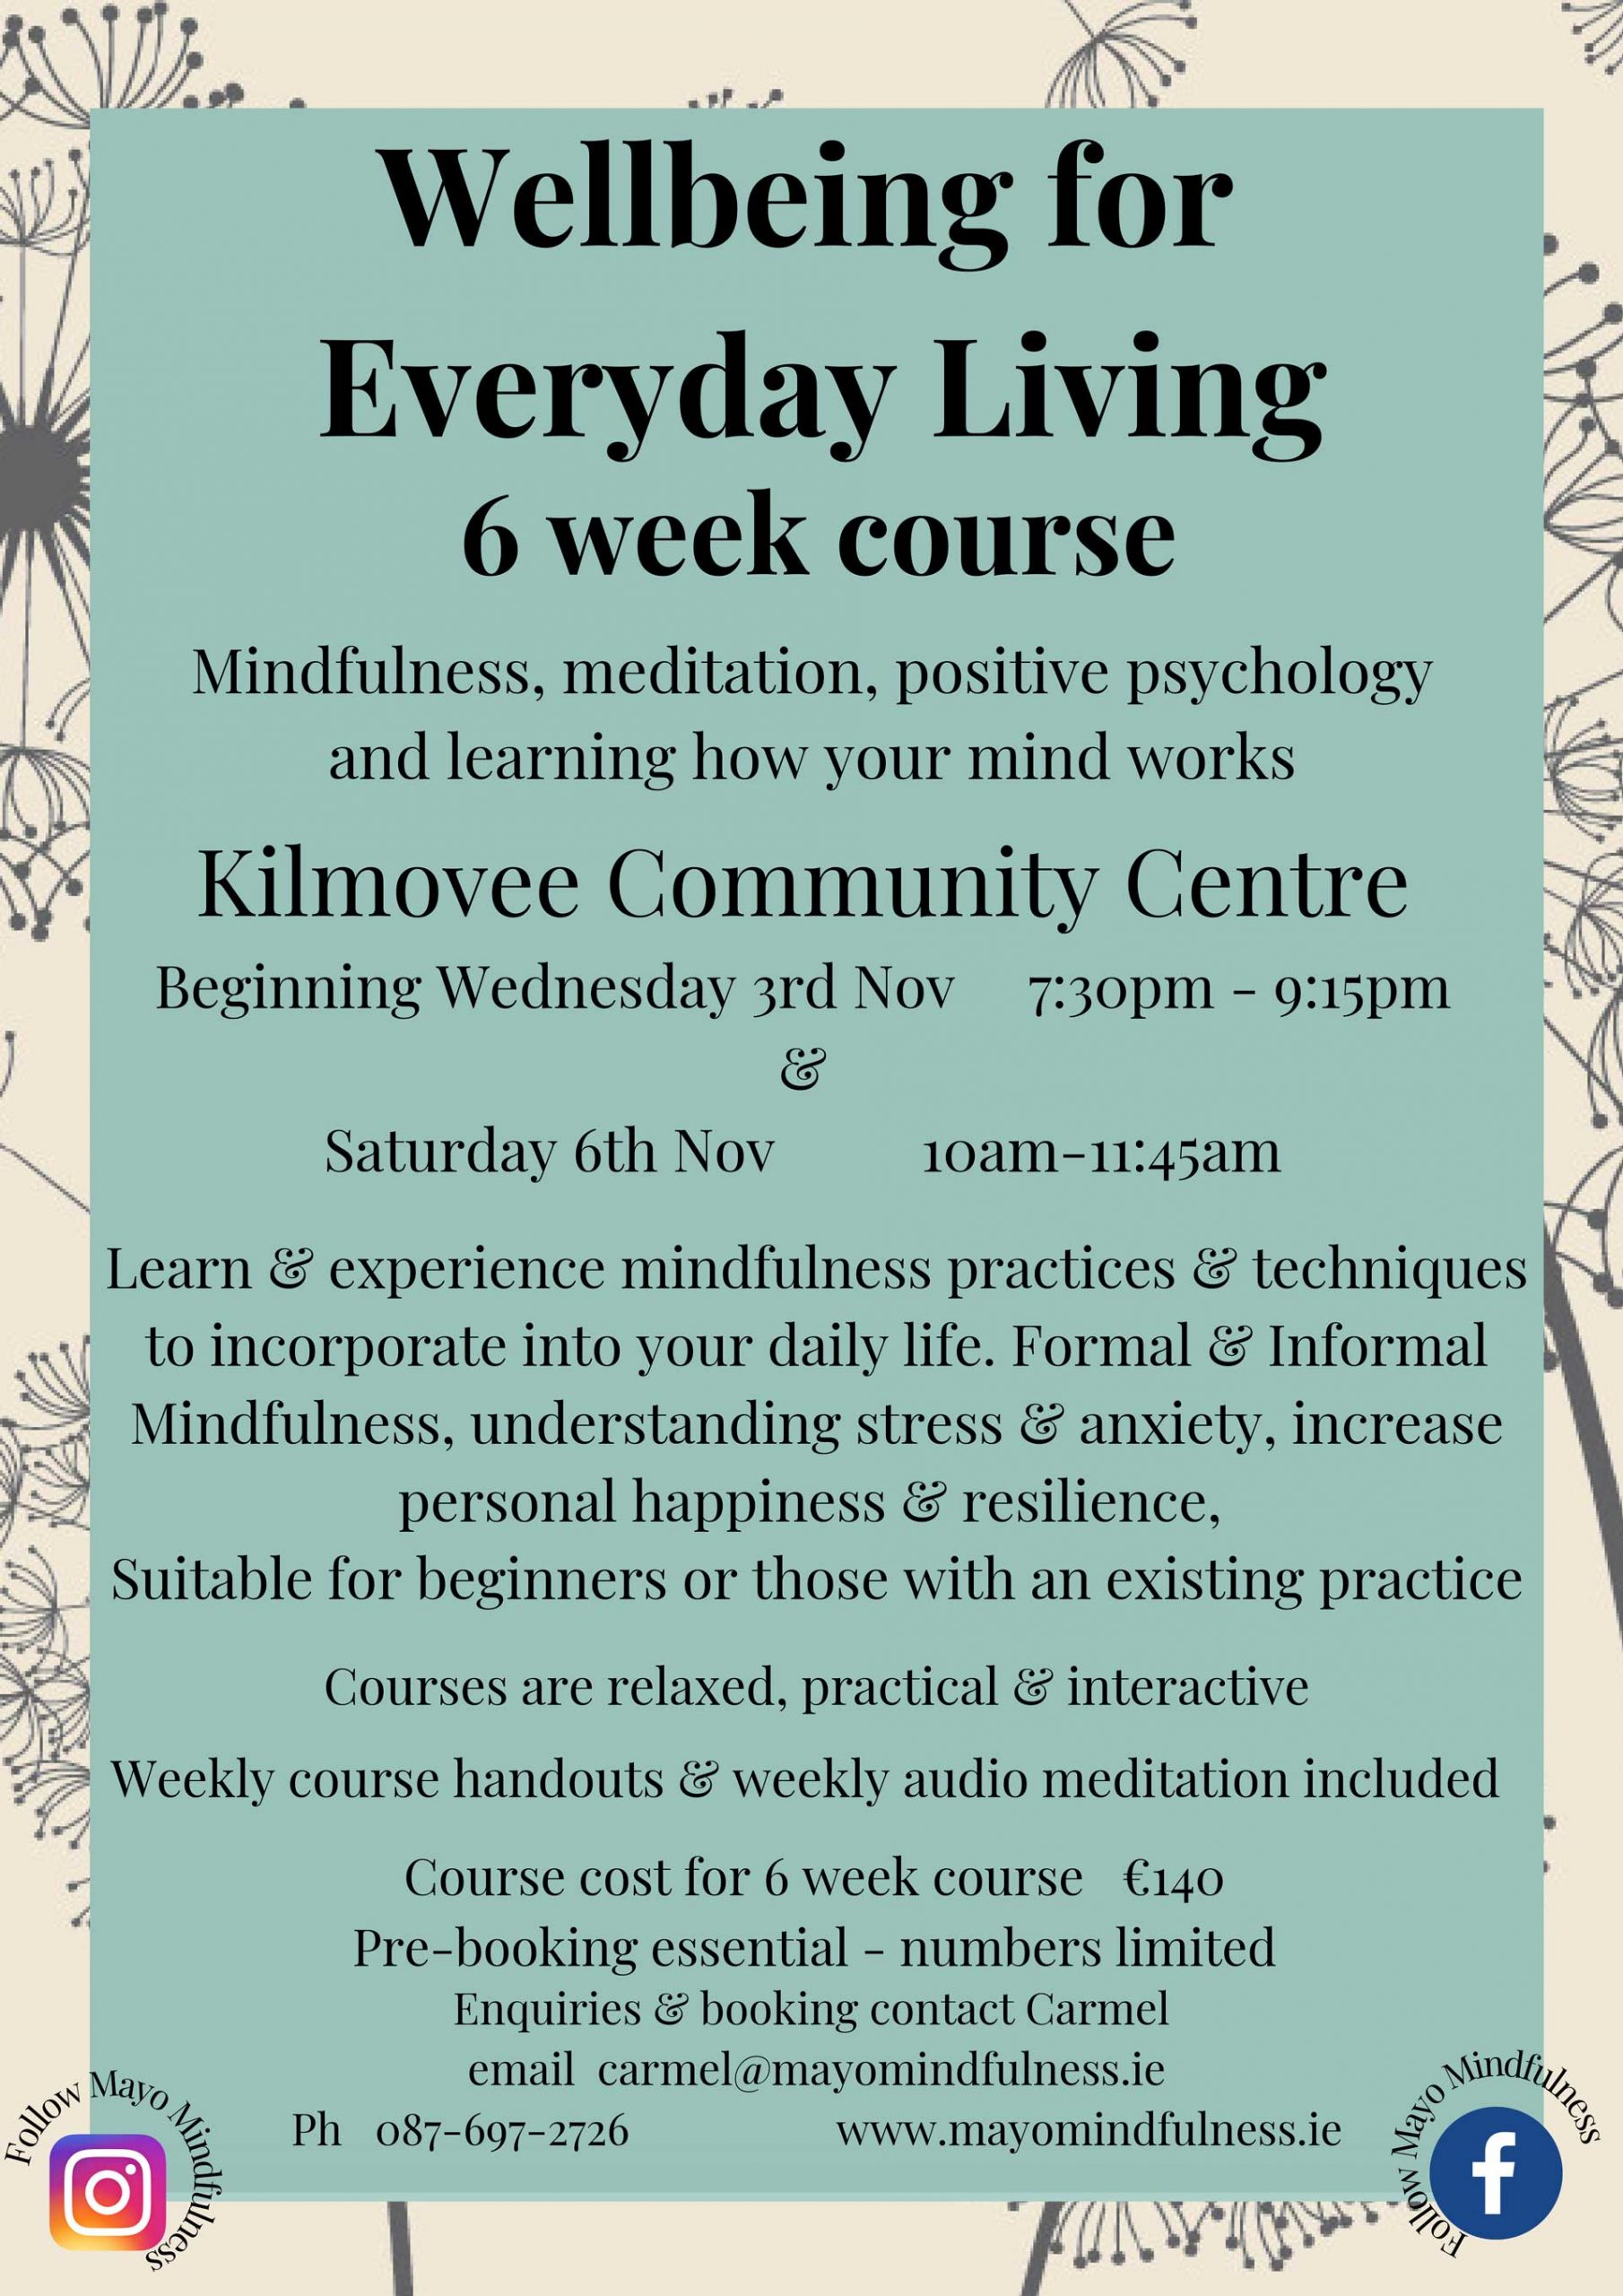 Wellbeing for Everyday Living